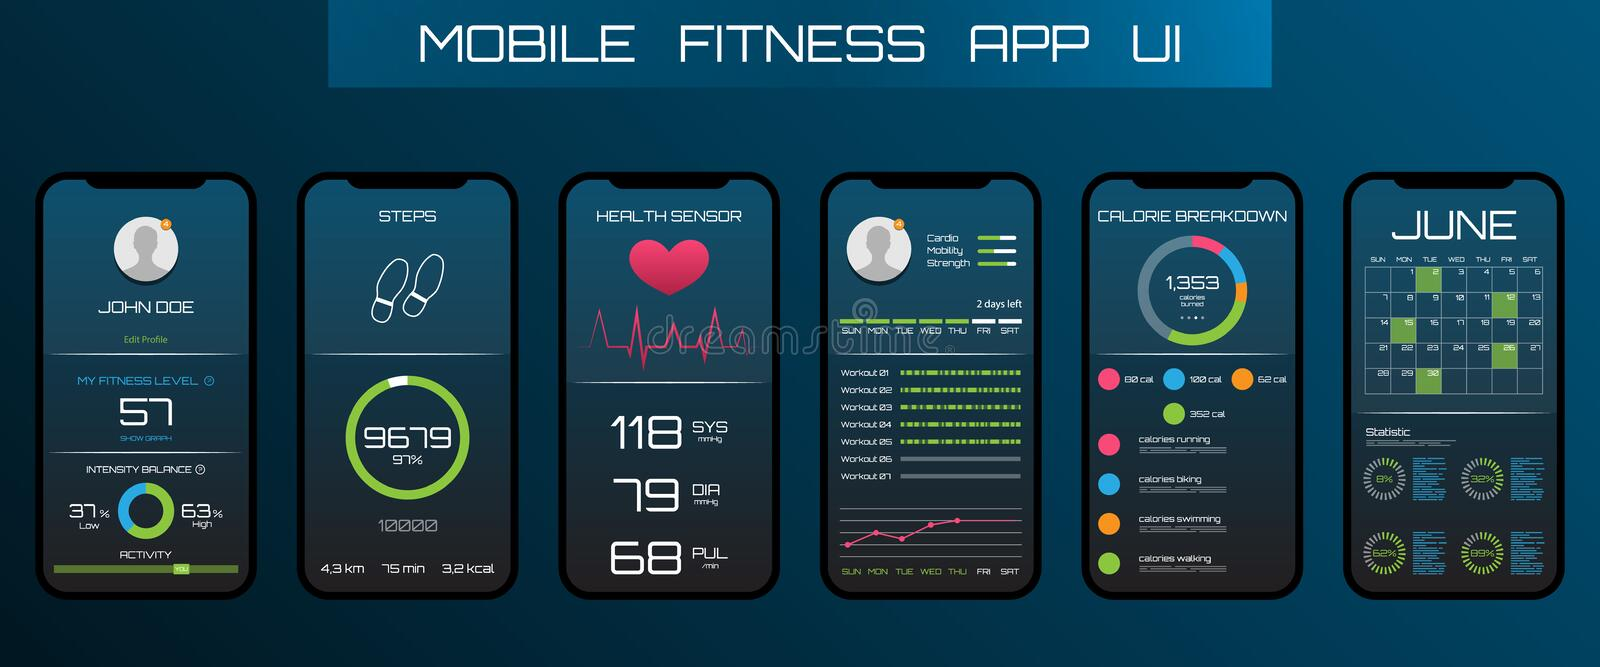 Application on the Mobile Phone to Track Steps, Pedometer. App for Fitness. Concept Interface Design of Apps royalty free illustration